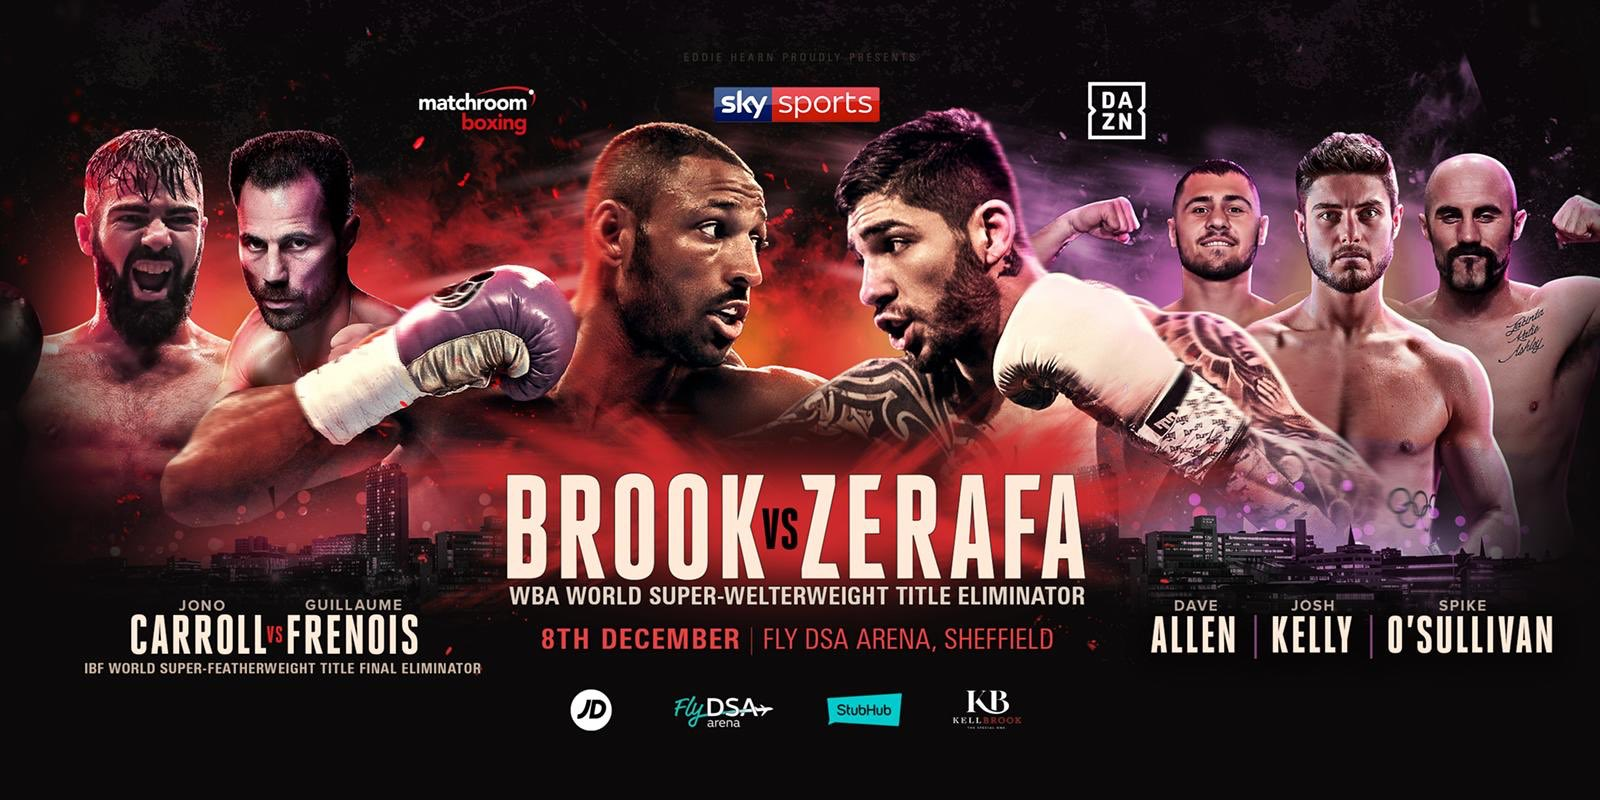 Michael Zerafa - Weights from Sheffield: Kell Brook: 150.6lbs vs Michael Zerafa: 153.5lbs